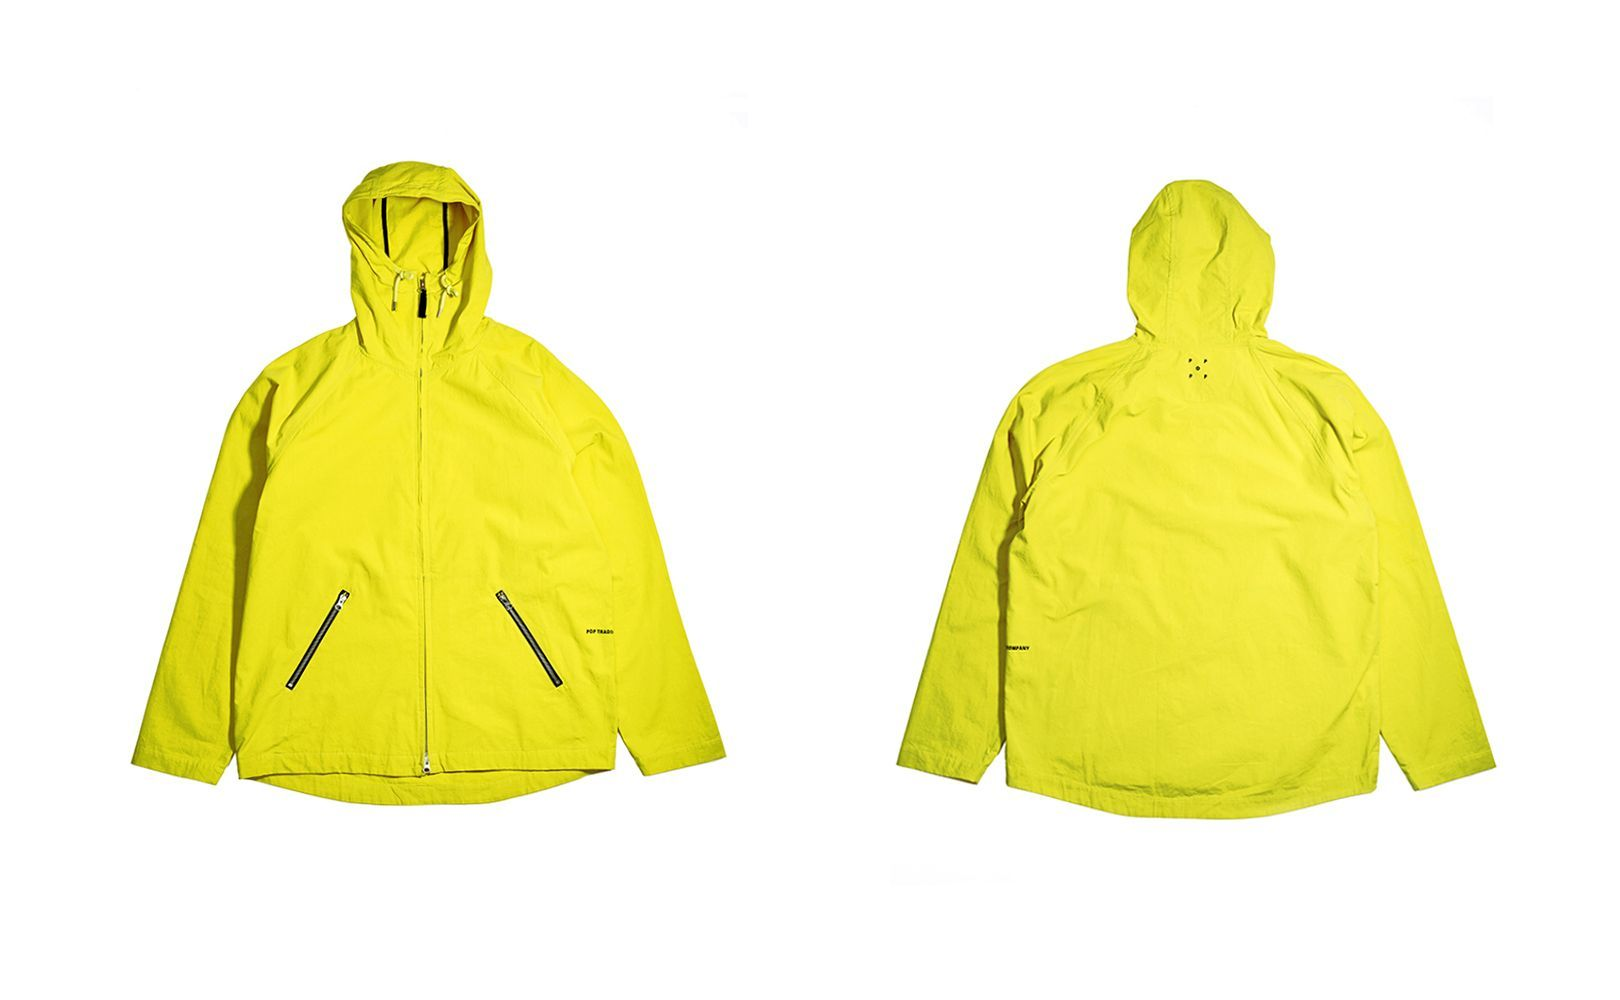 pop-trading-company-aw17-product-13-ams-hooded-zip-jacket-electric-yellow-poplin